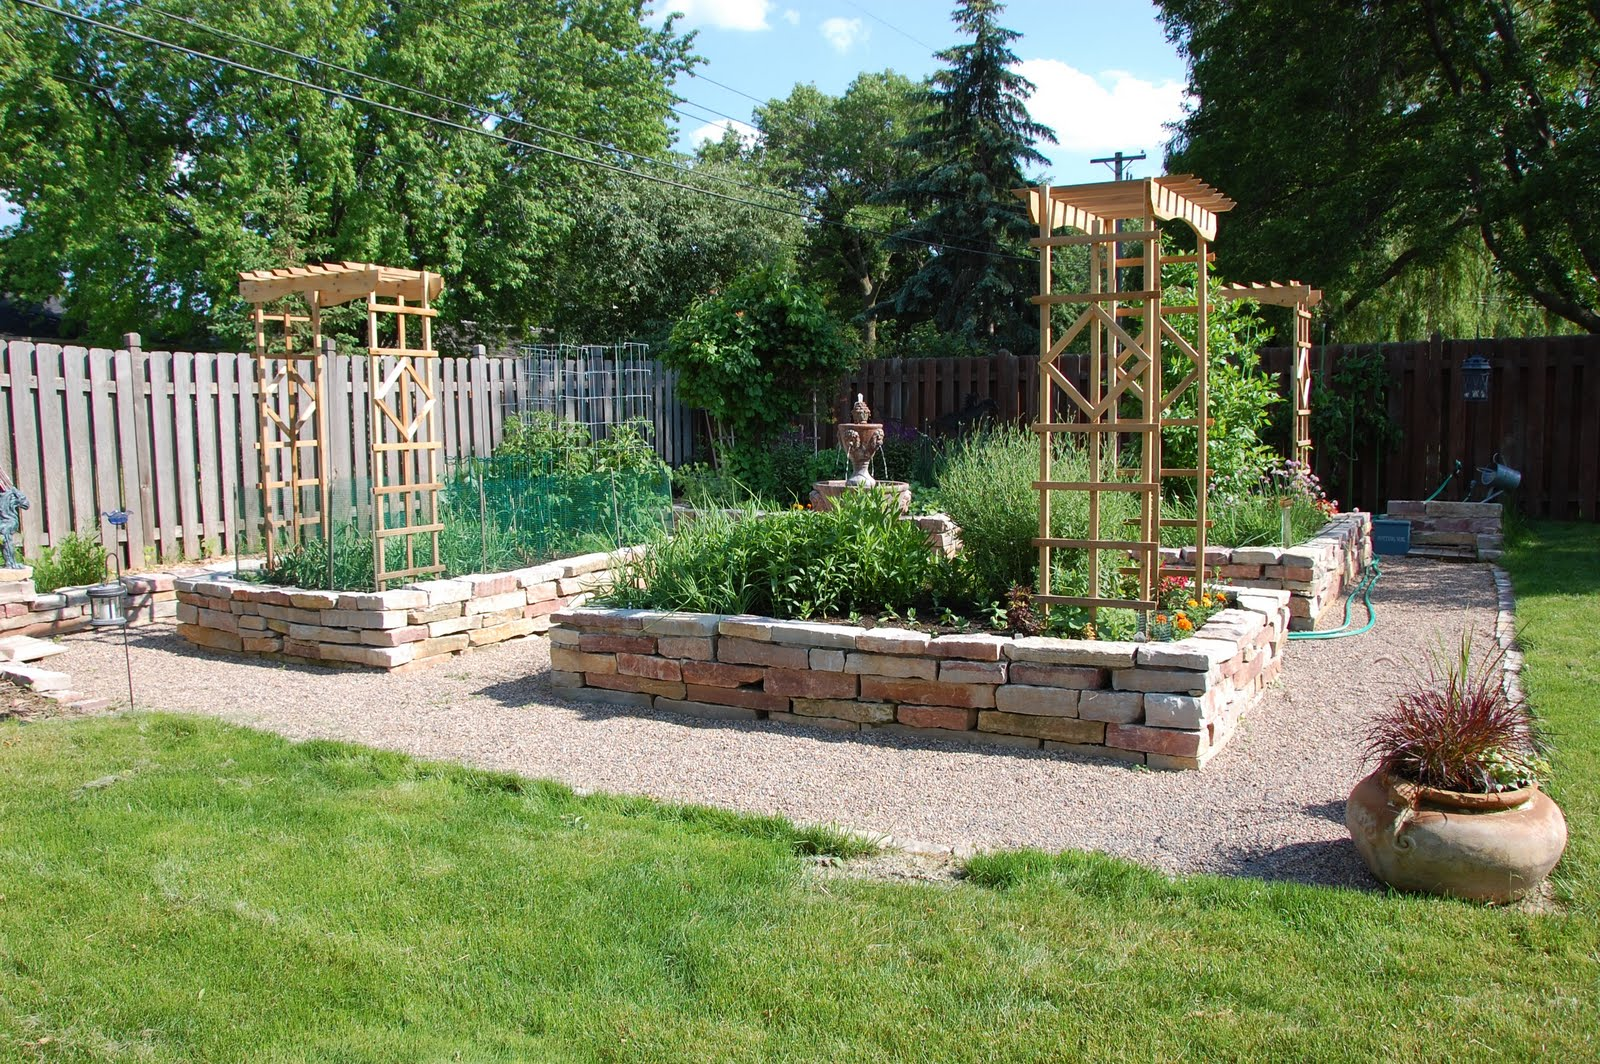 vignette design design bucket list 3 design a beautiful raised bed vegetable garden